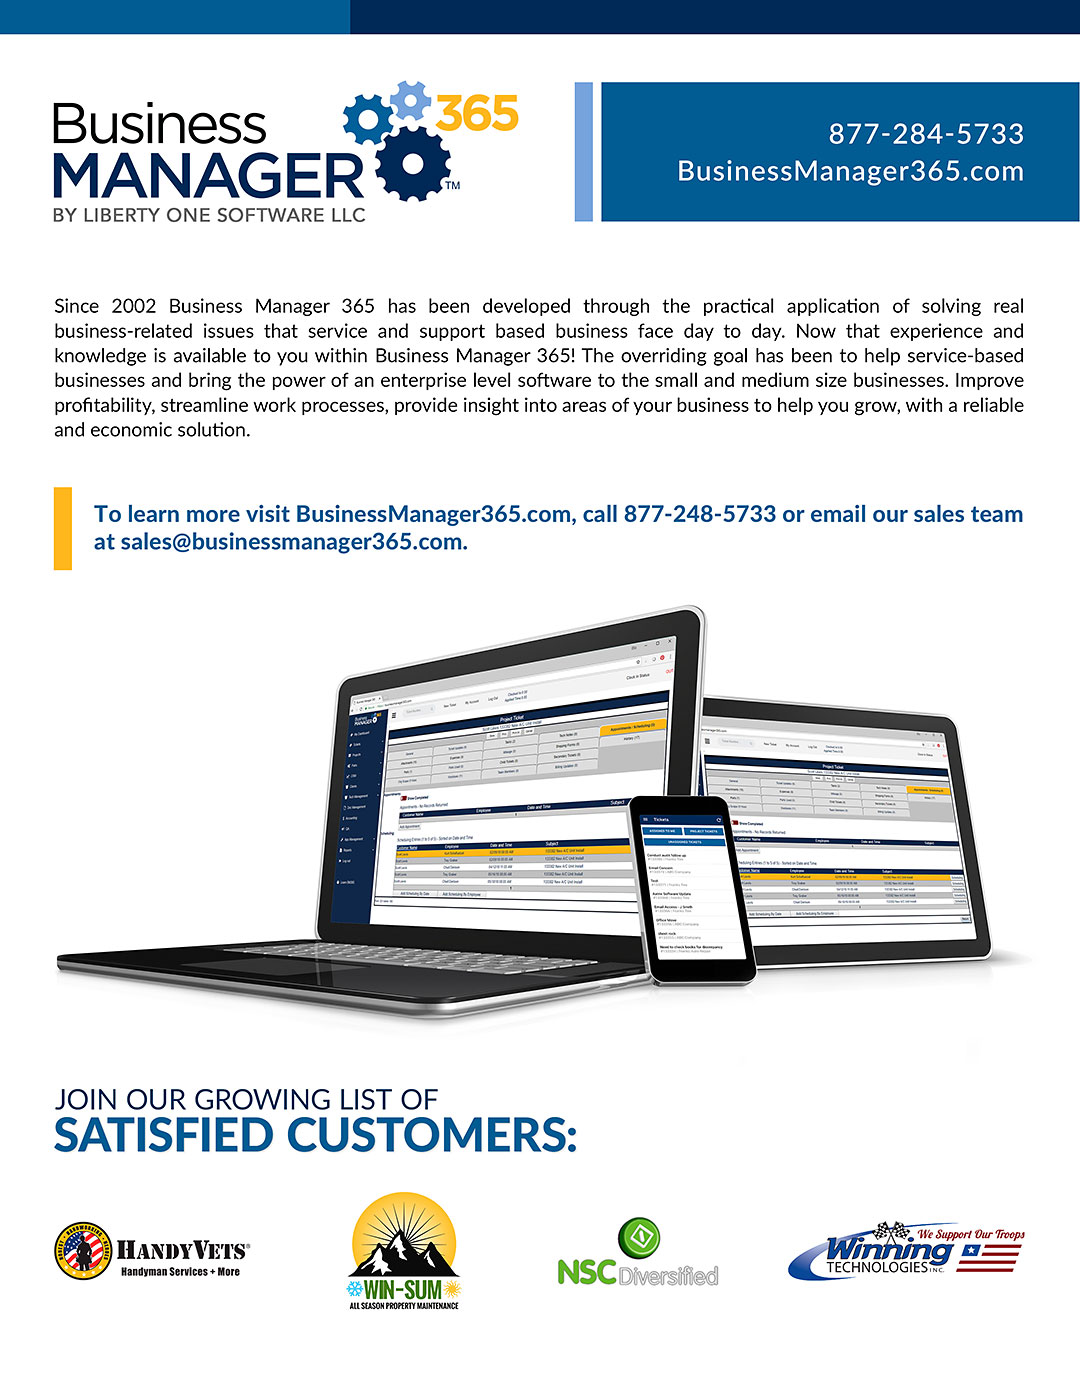 Business Manager 365 September 2019 Newsletter